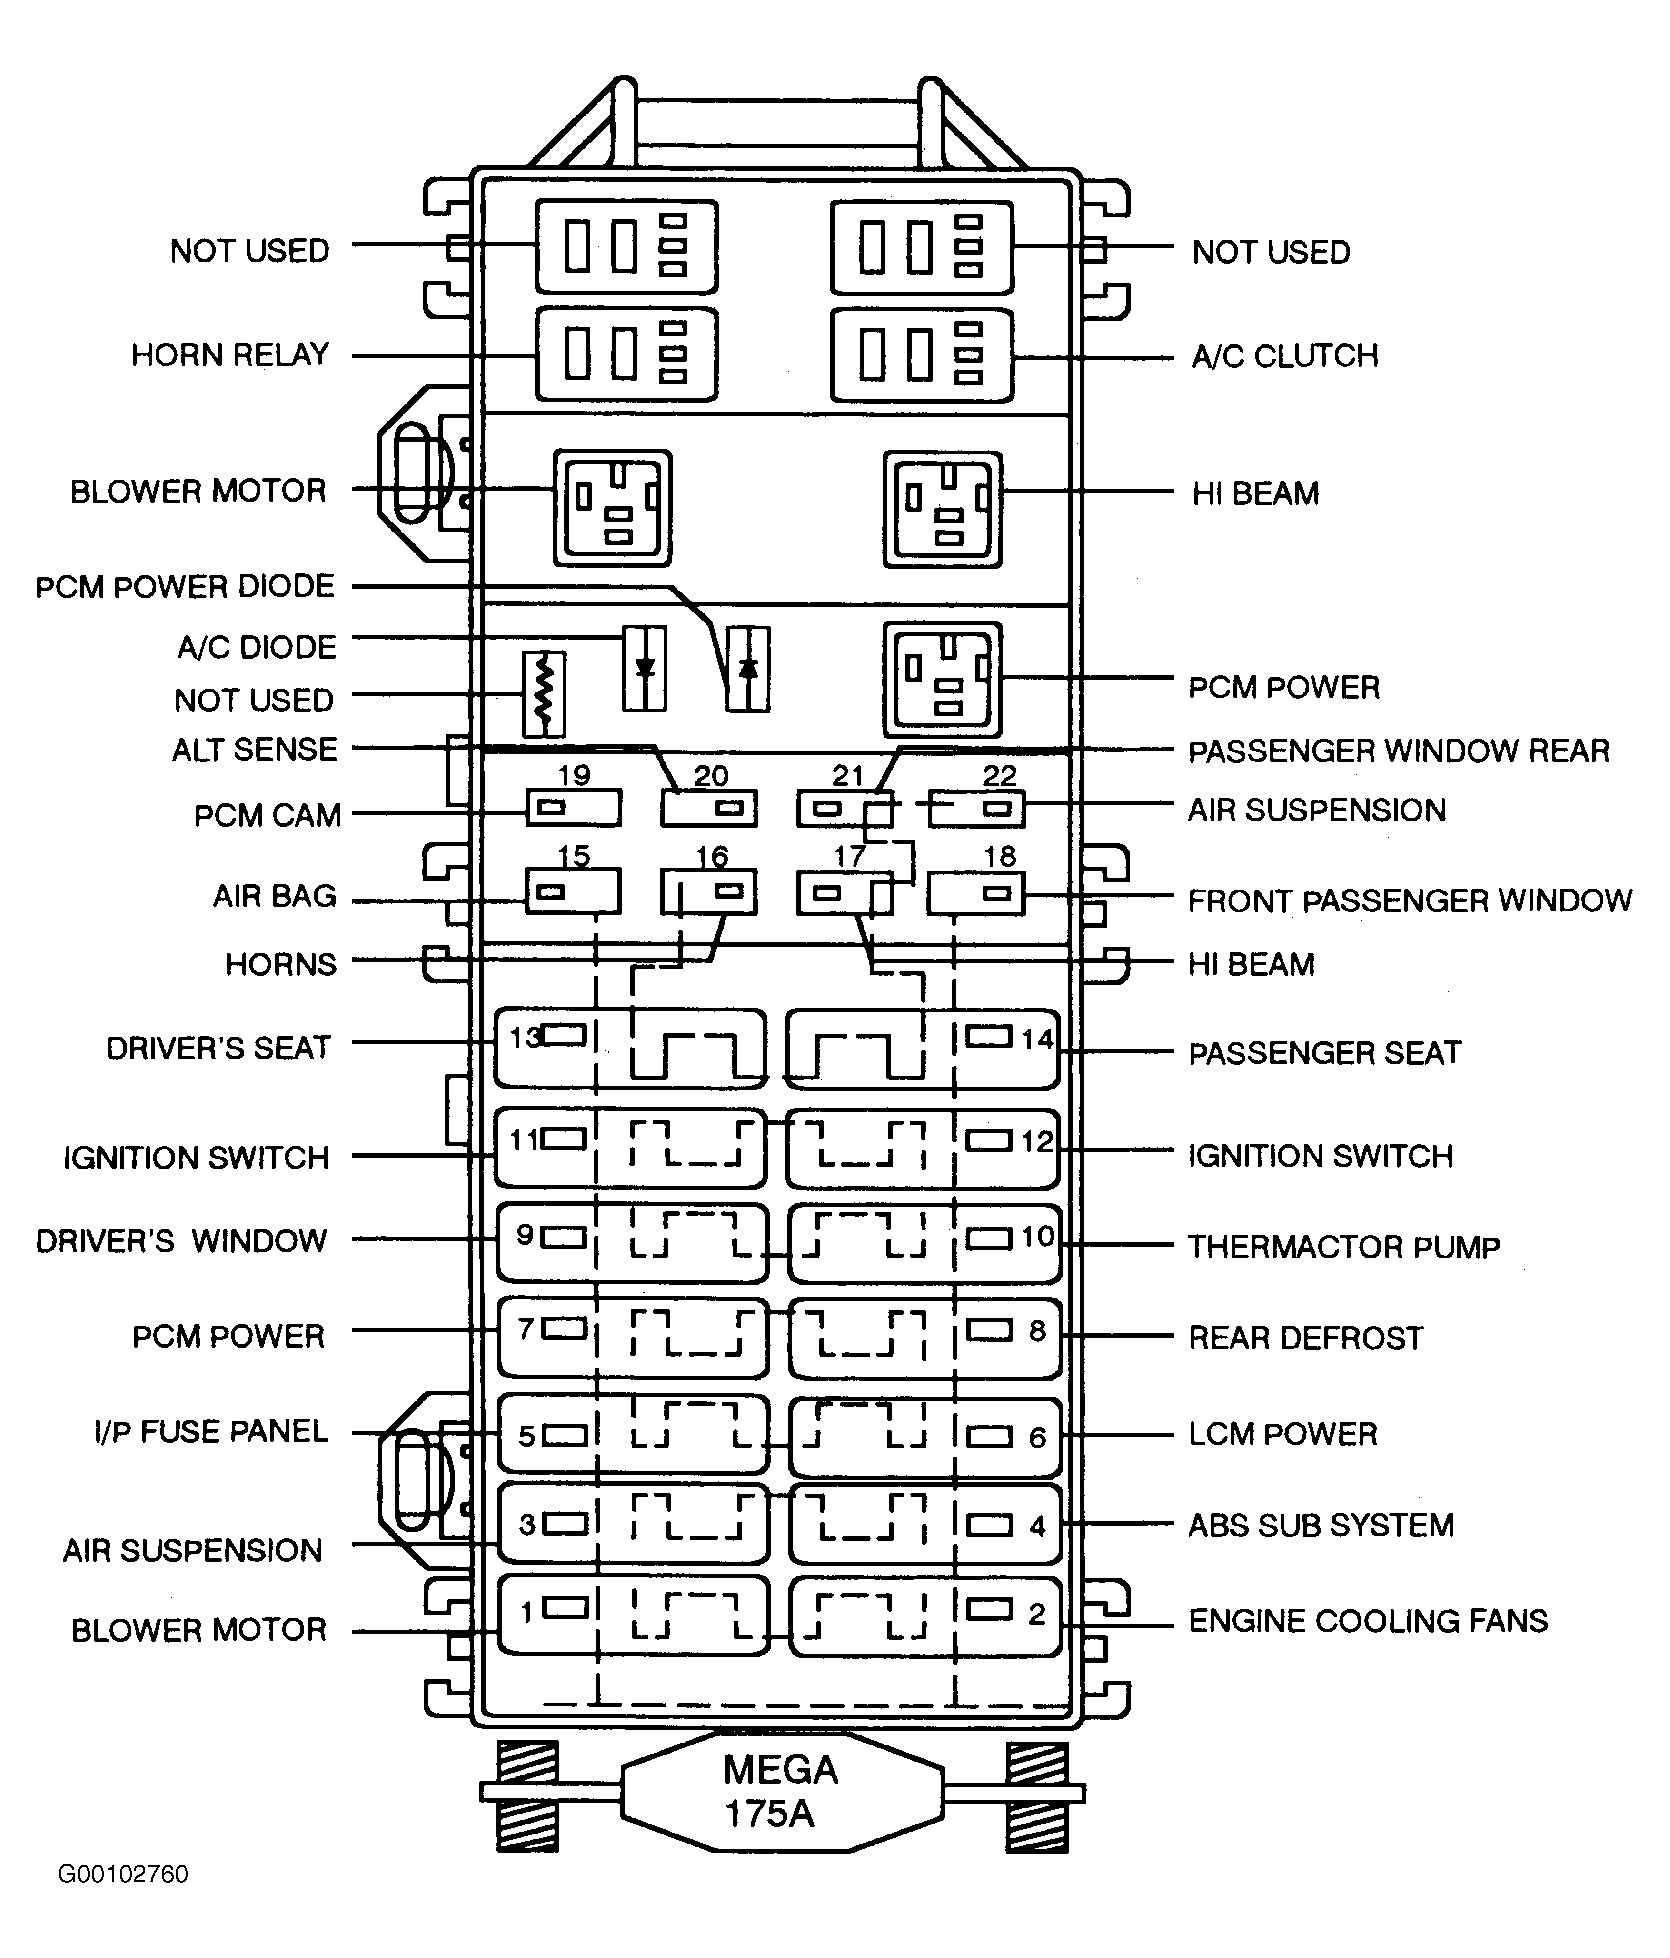 hight resolution of 2007 lincoln navigator fuse box schema diagram database 2002 lincoln navigator fuse box wiring diagram 2007